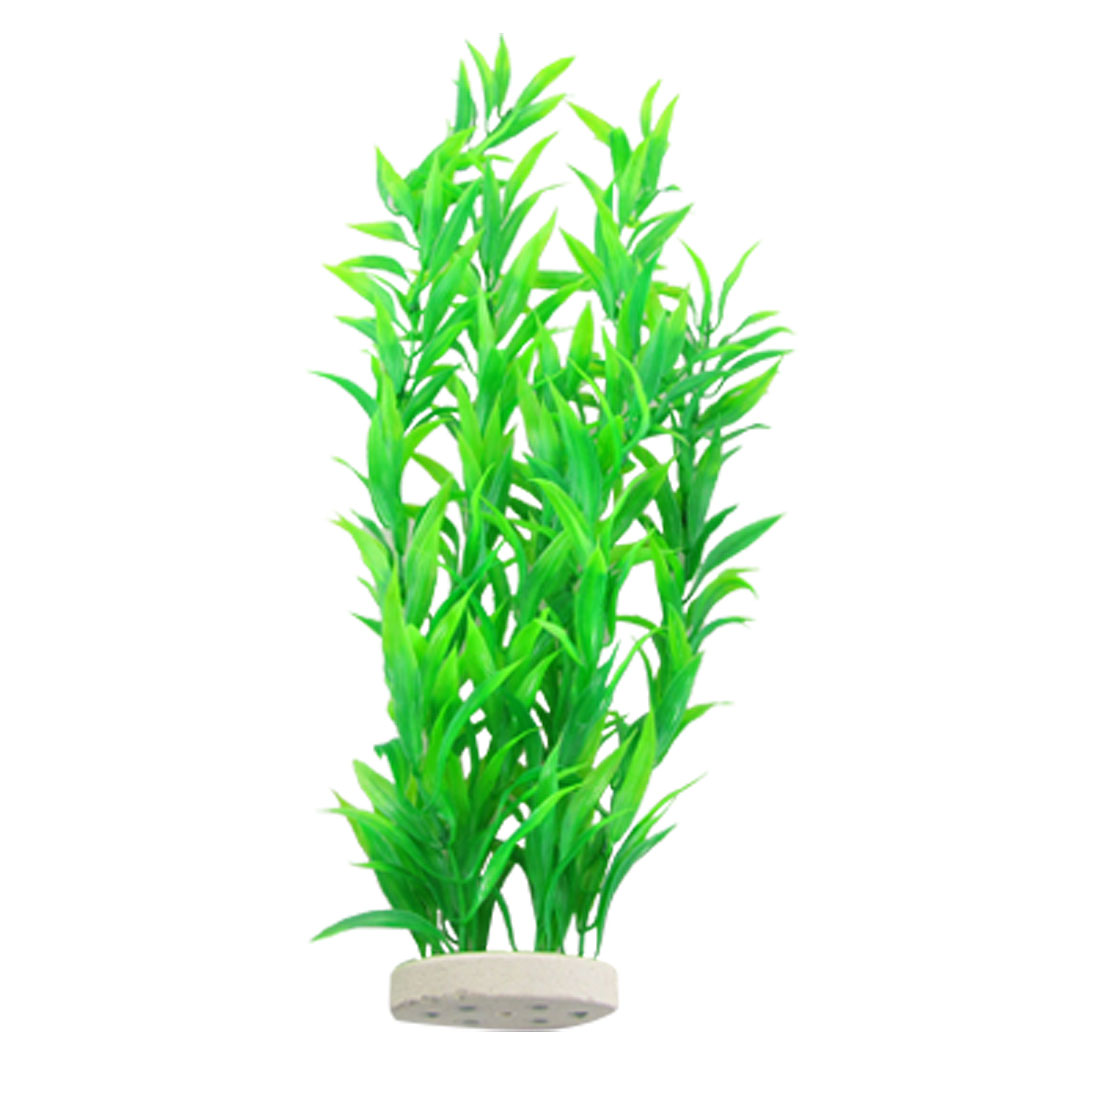 Oval Ceramic Base Green Plastic Long Grass for Fish Tank